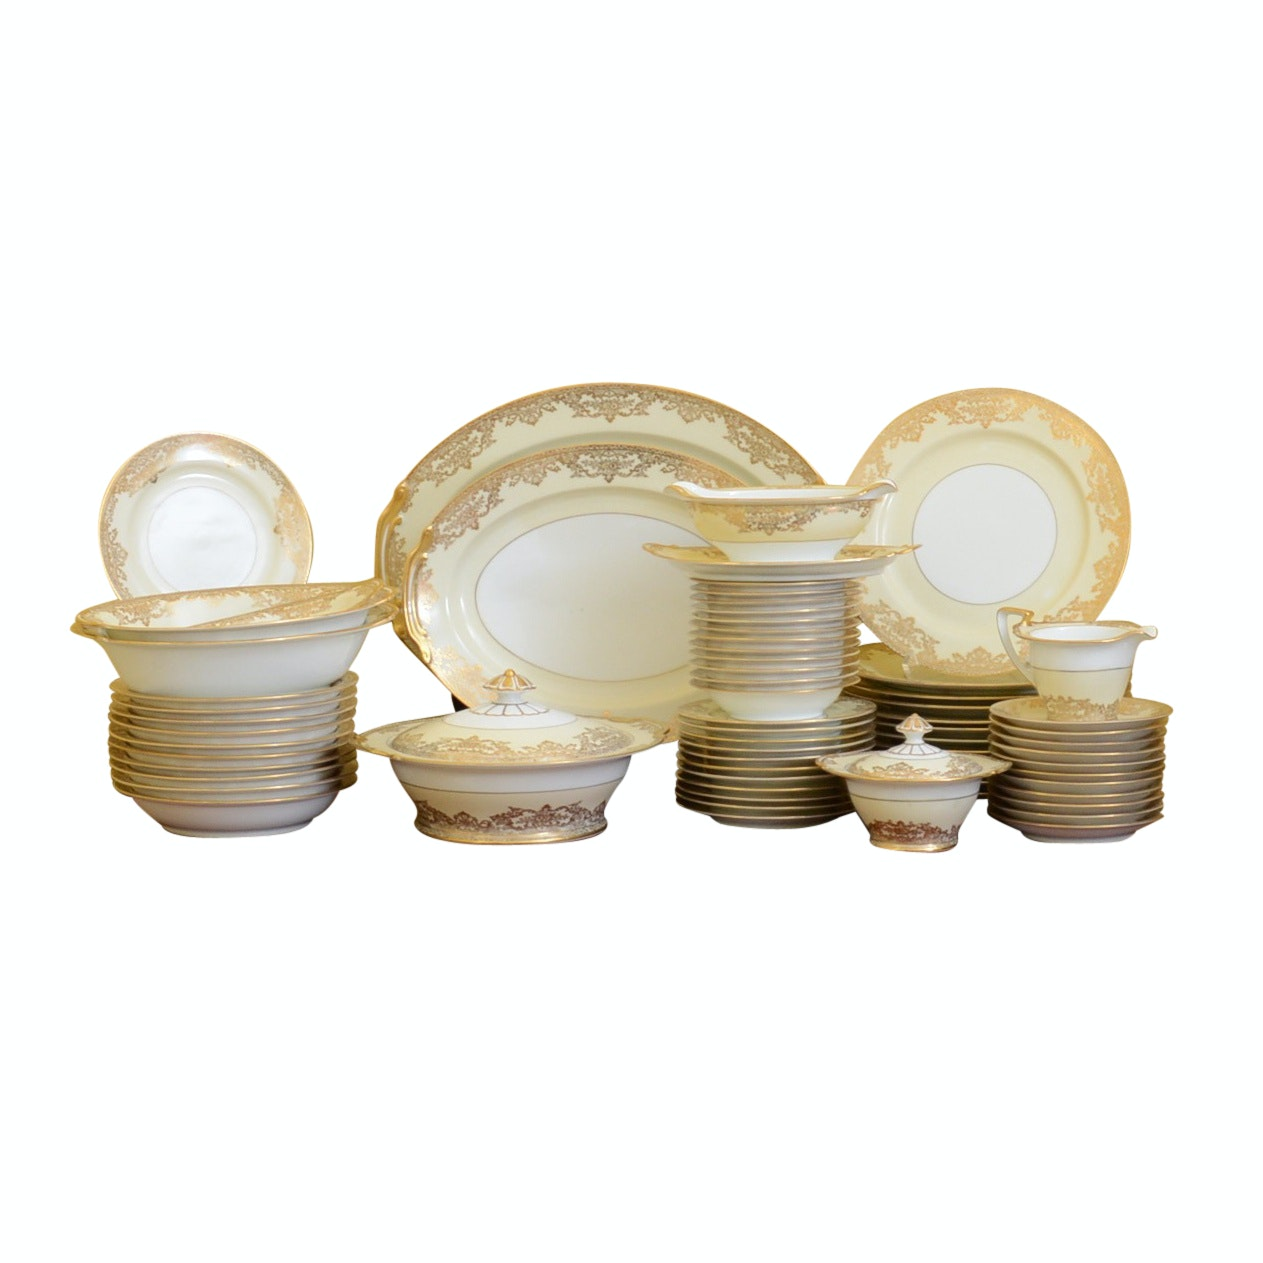 "Collection of Early Noritake ""Glenmore"" Encrusted Dinnerware"